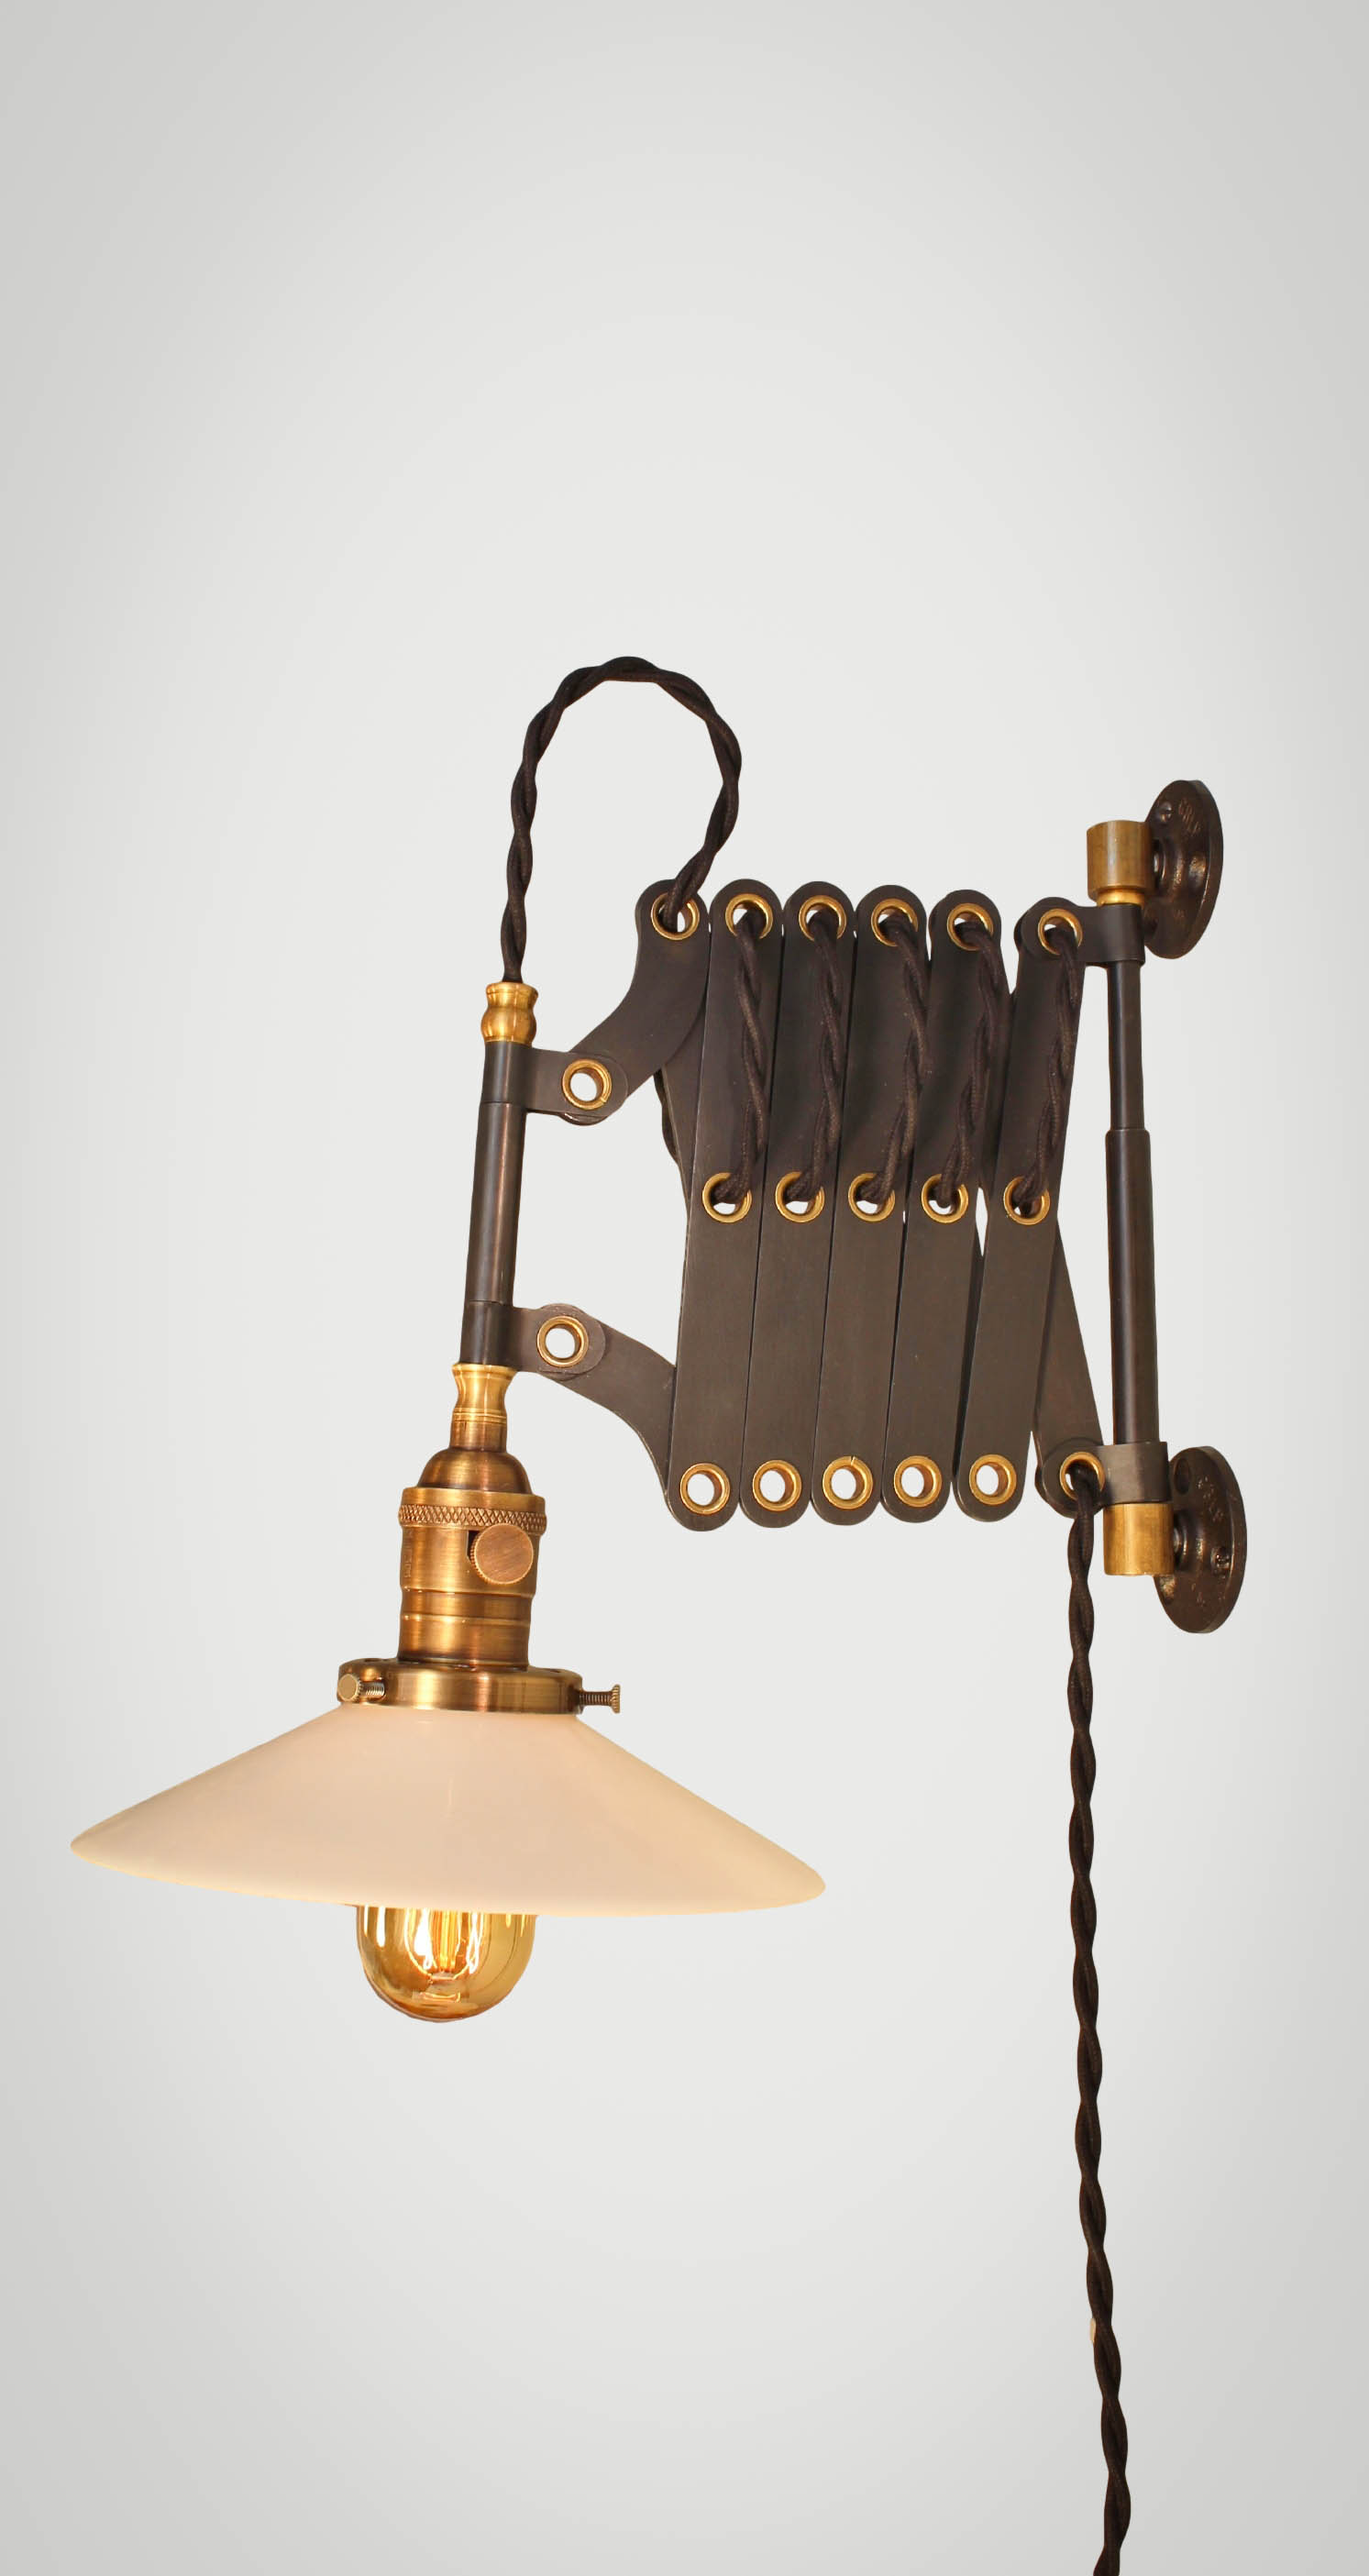 Swing Wall Lamp Vintage Industrial Scissor Light Expandable Accordion Swing Arm Wall Sconce Steampunk Lamp Black Steel Industrial Lighting From Dw Vintage